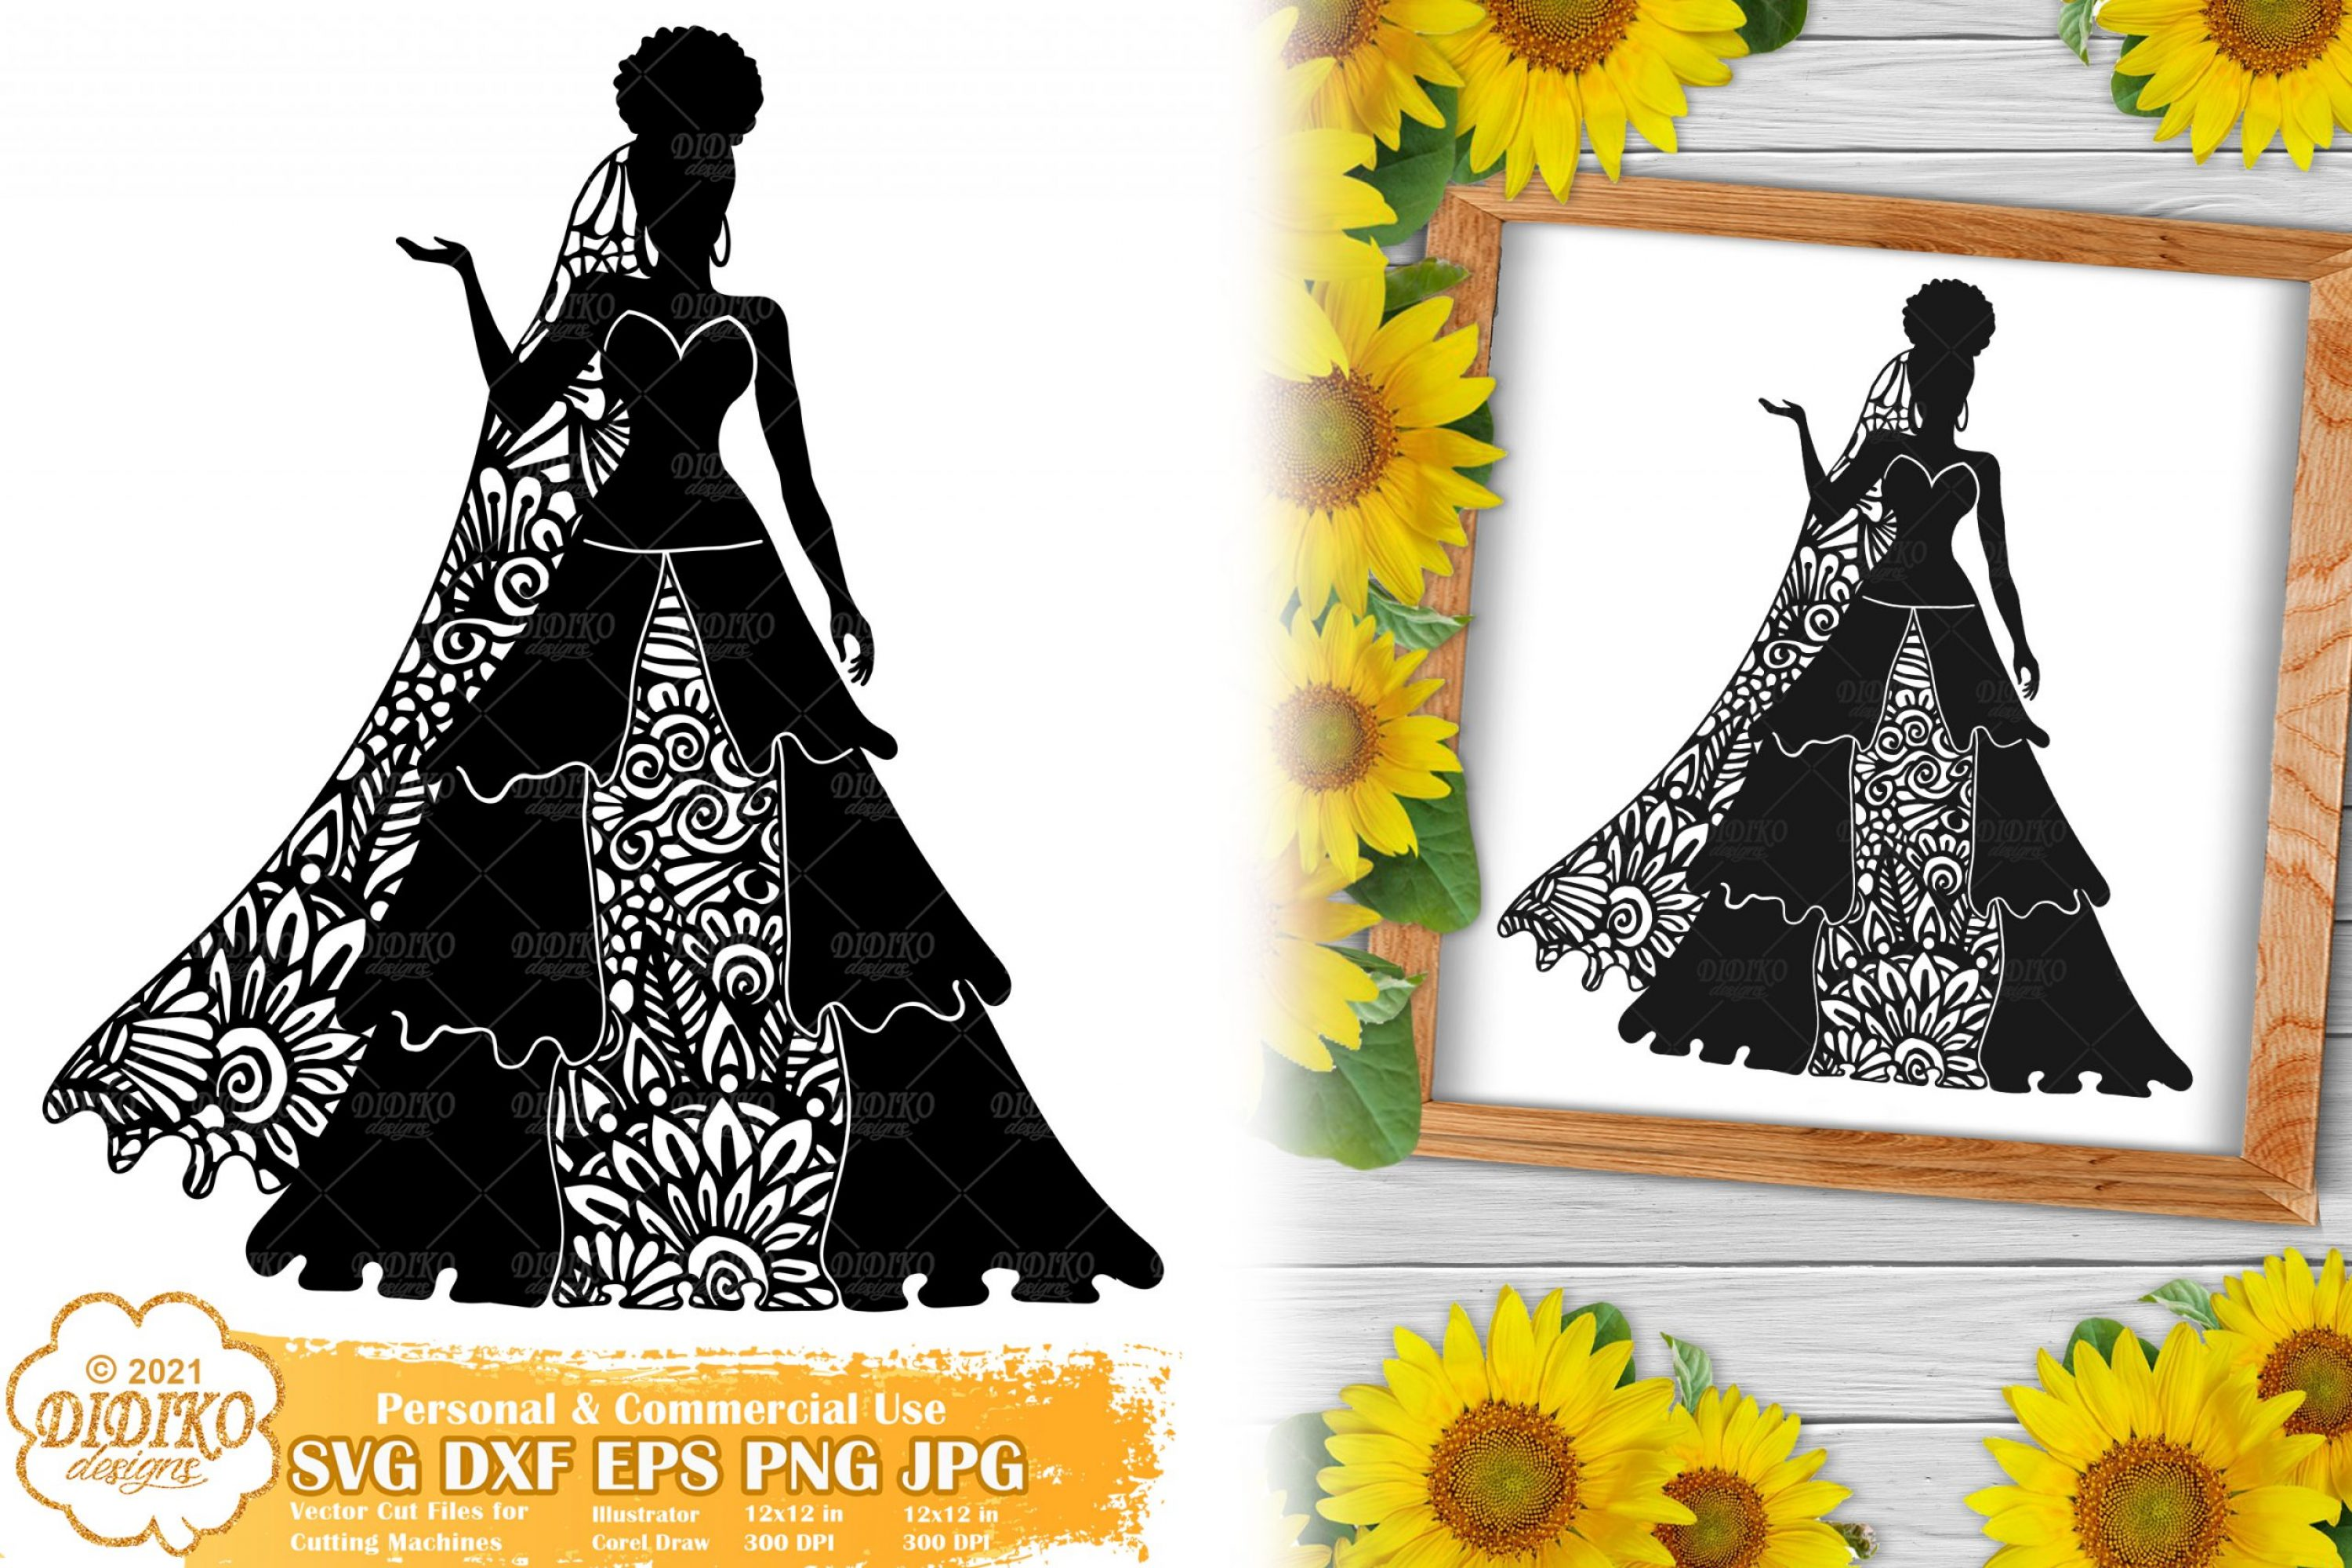 Zentangle Woman SVG #7, Wedding Svg, Paper Cut File